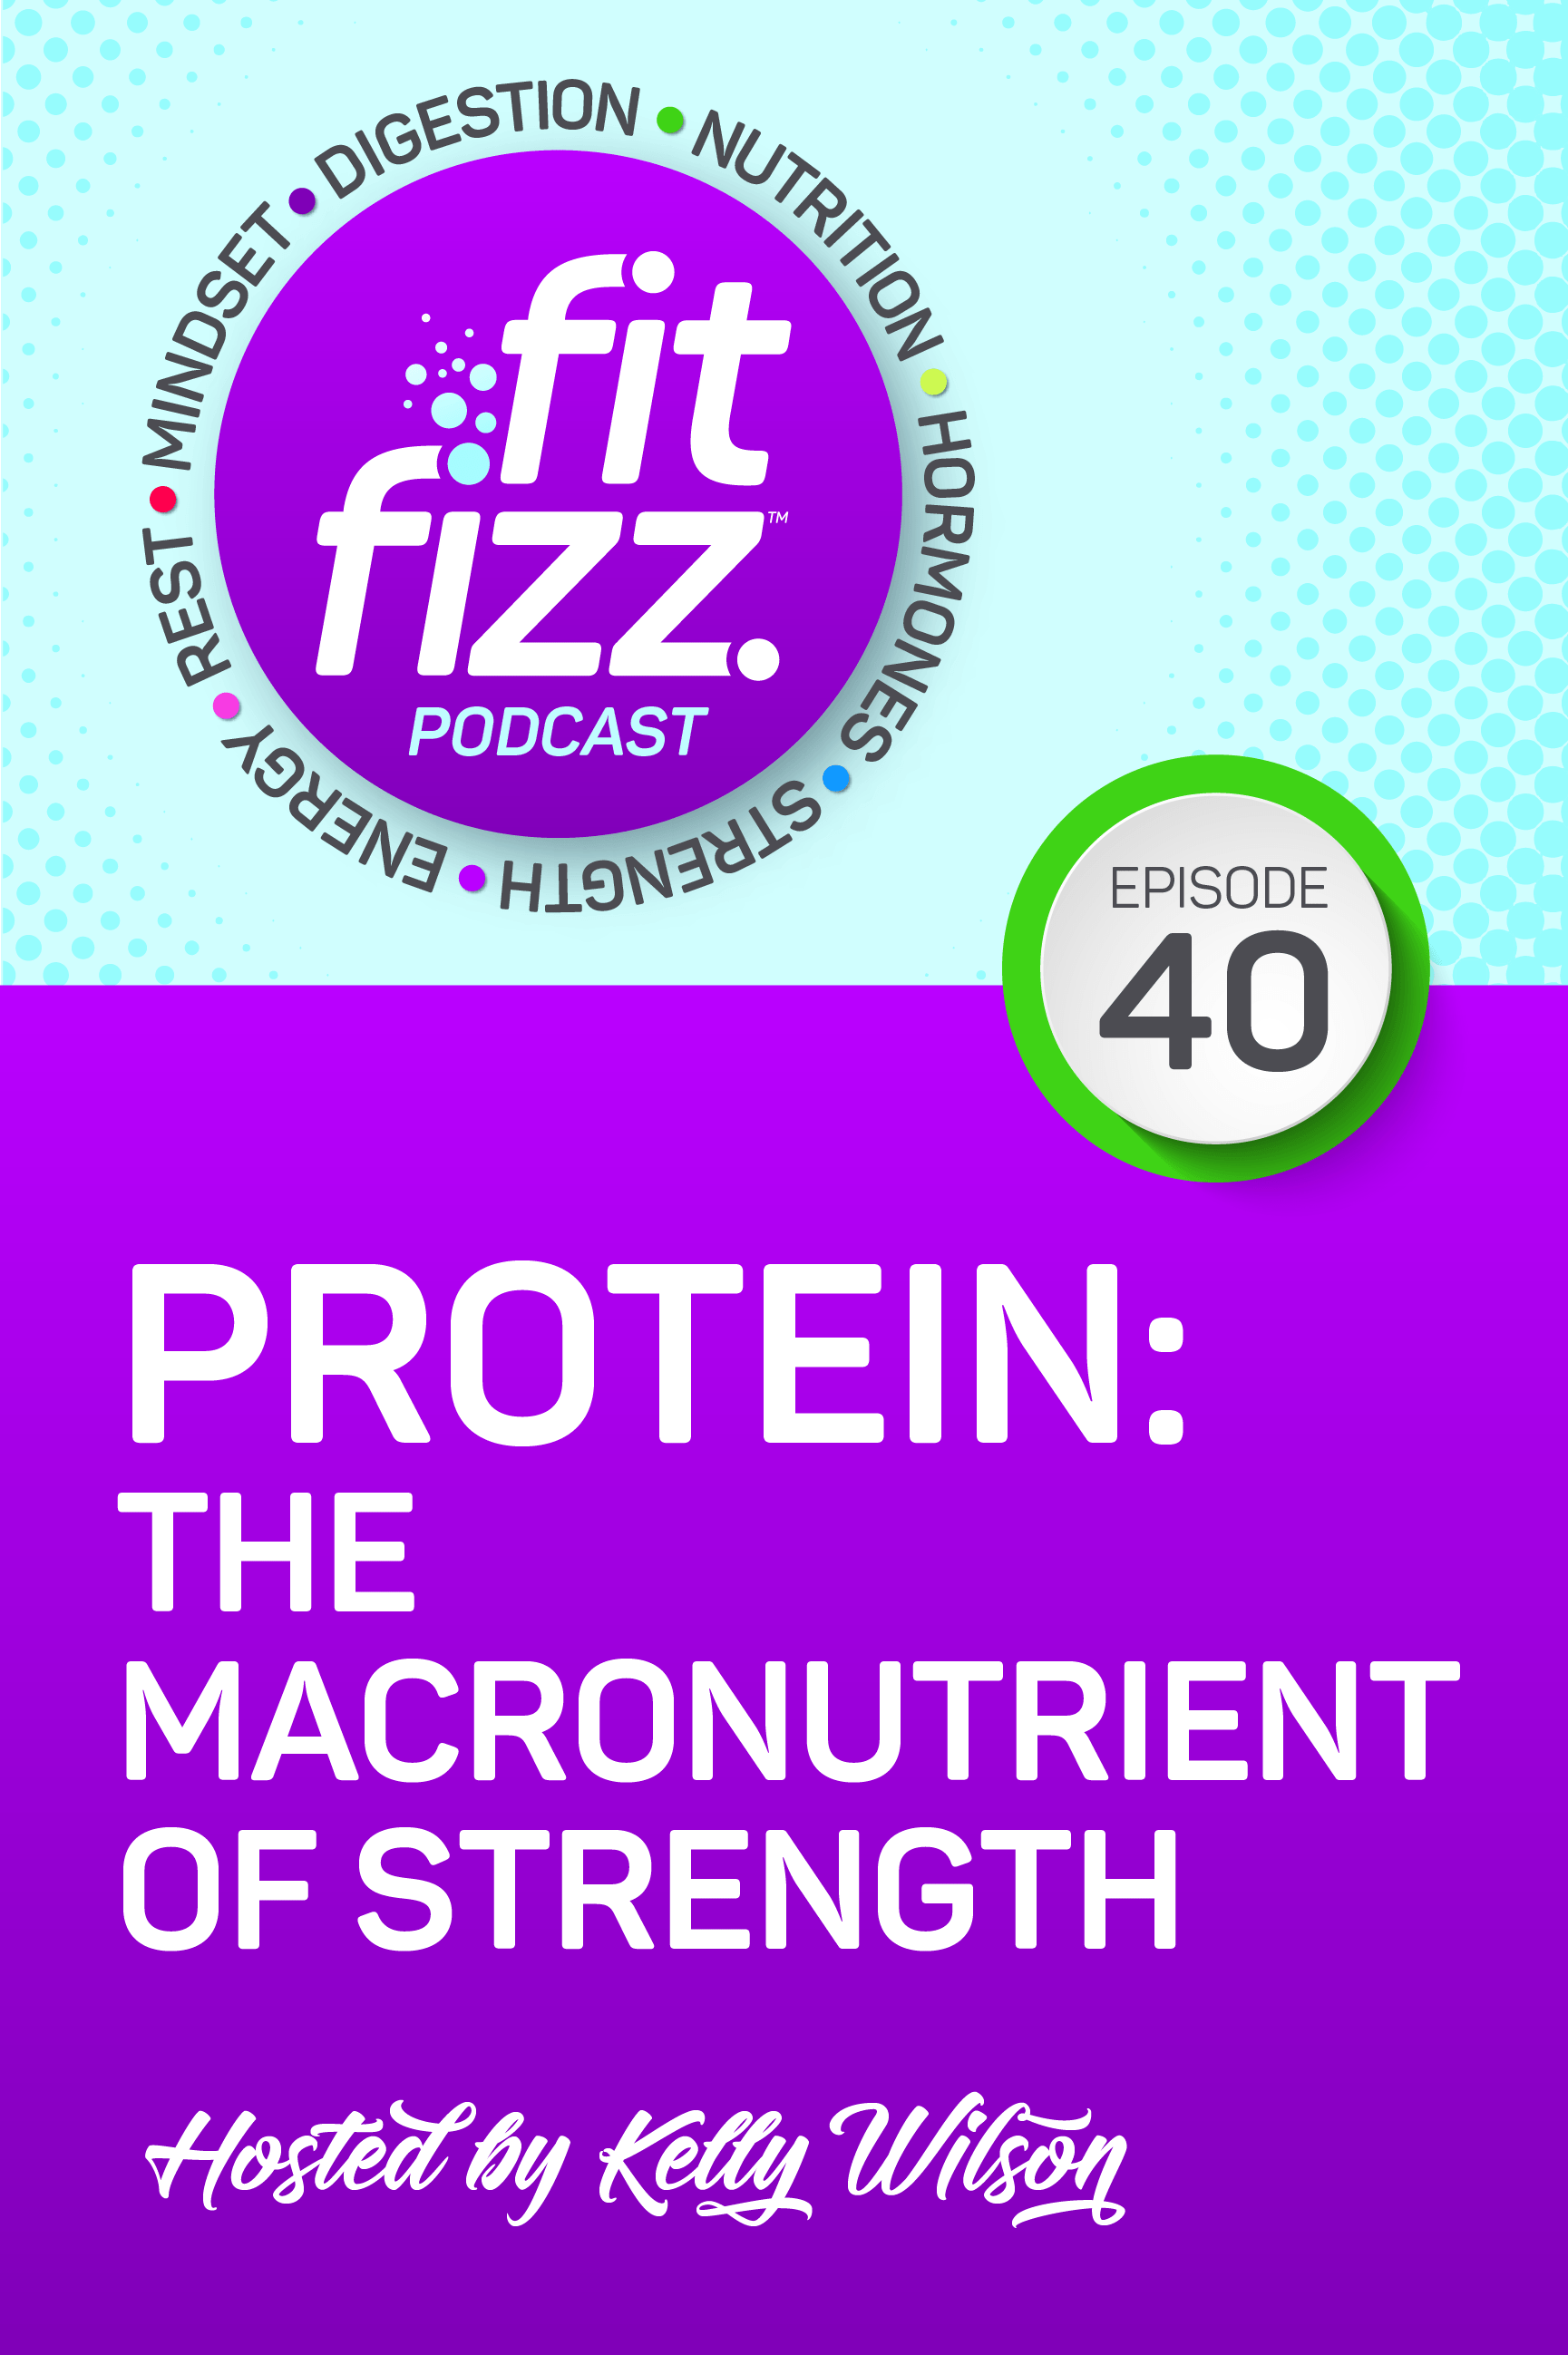 EP 40: Protein: The Macronutrient of Strength